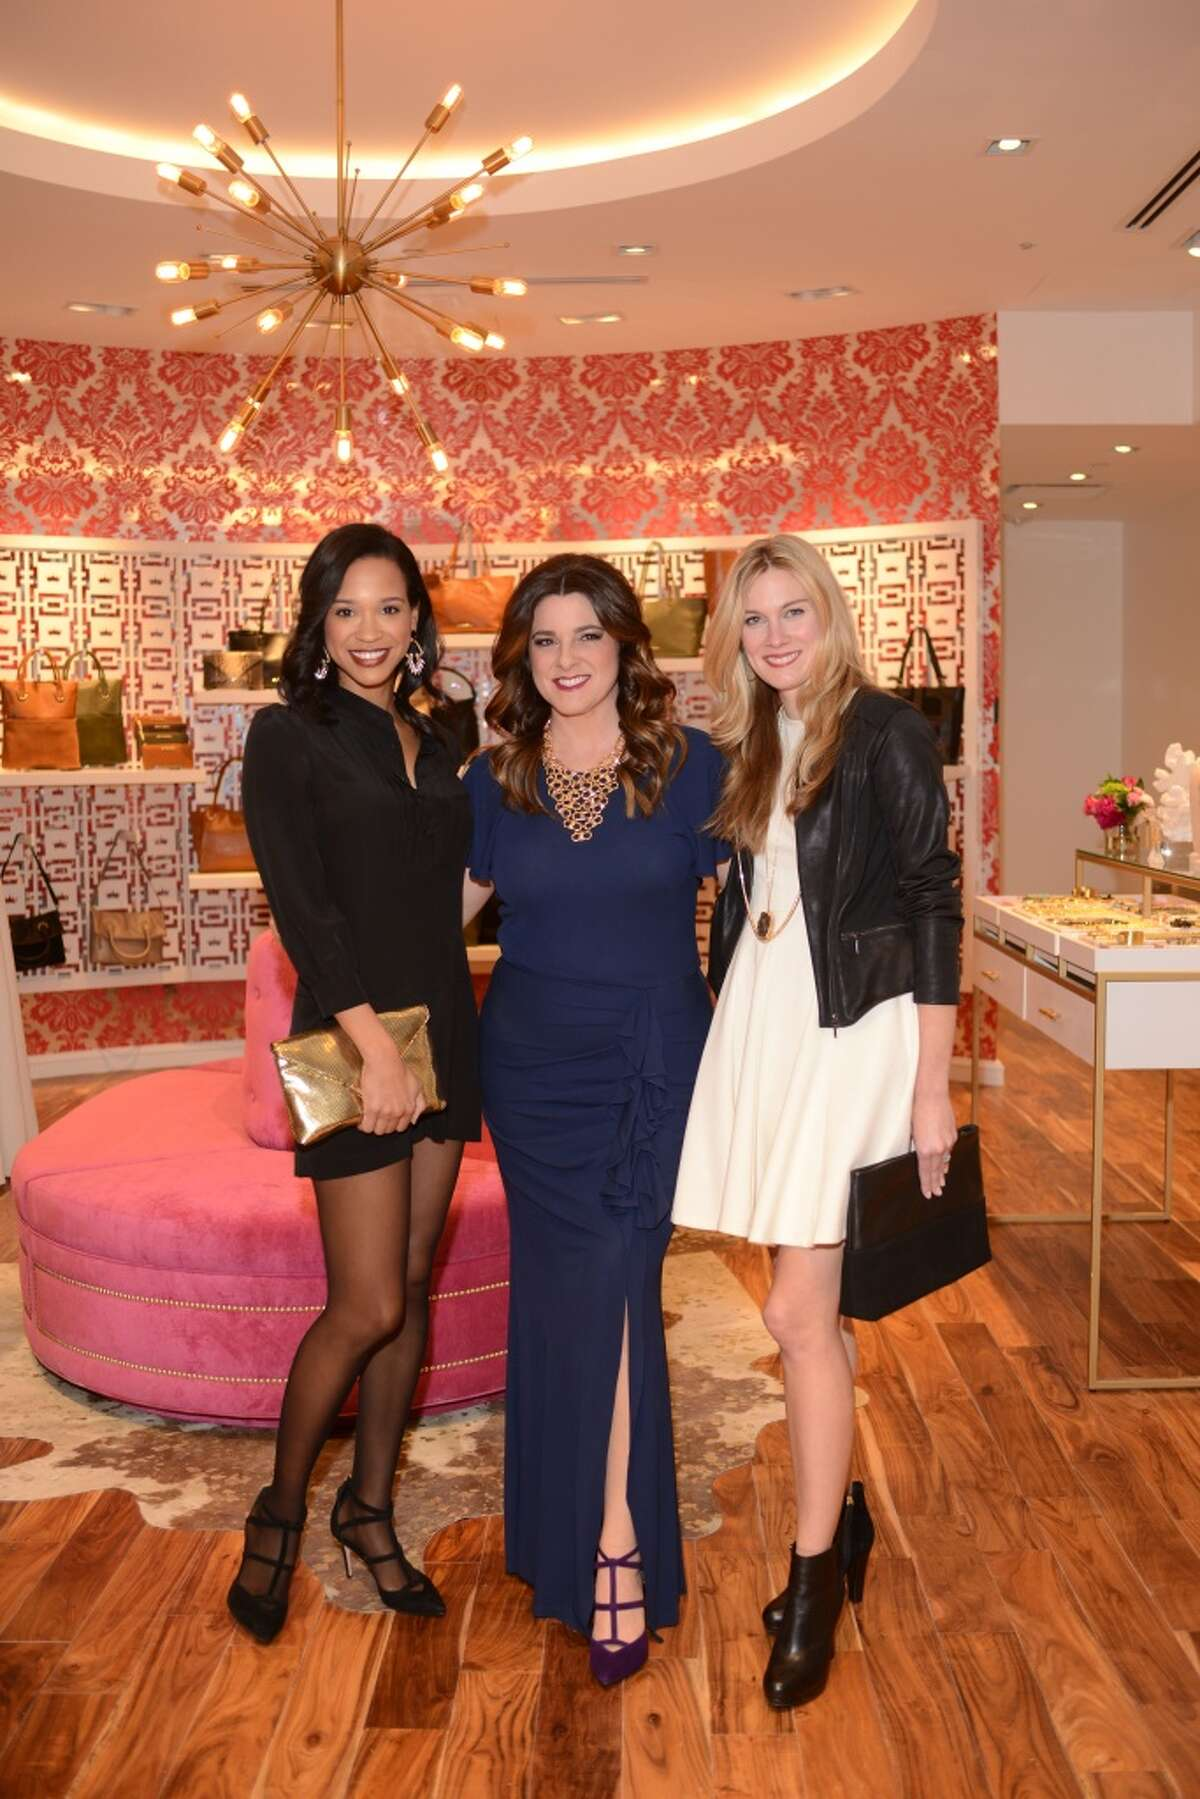 Mia Gradney (KHOU Channel 11), Elaine Turner and Carly Lee (C. Style) (Mia and Carly were hostesses)